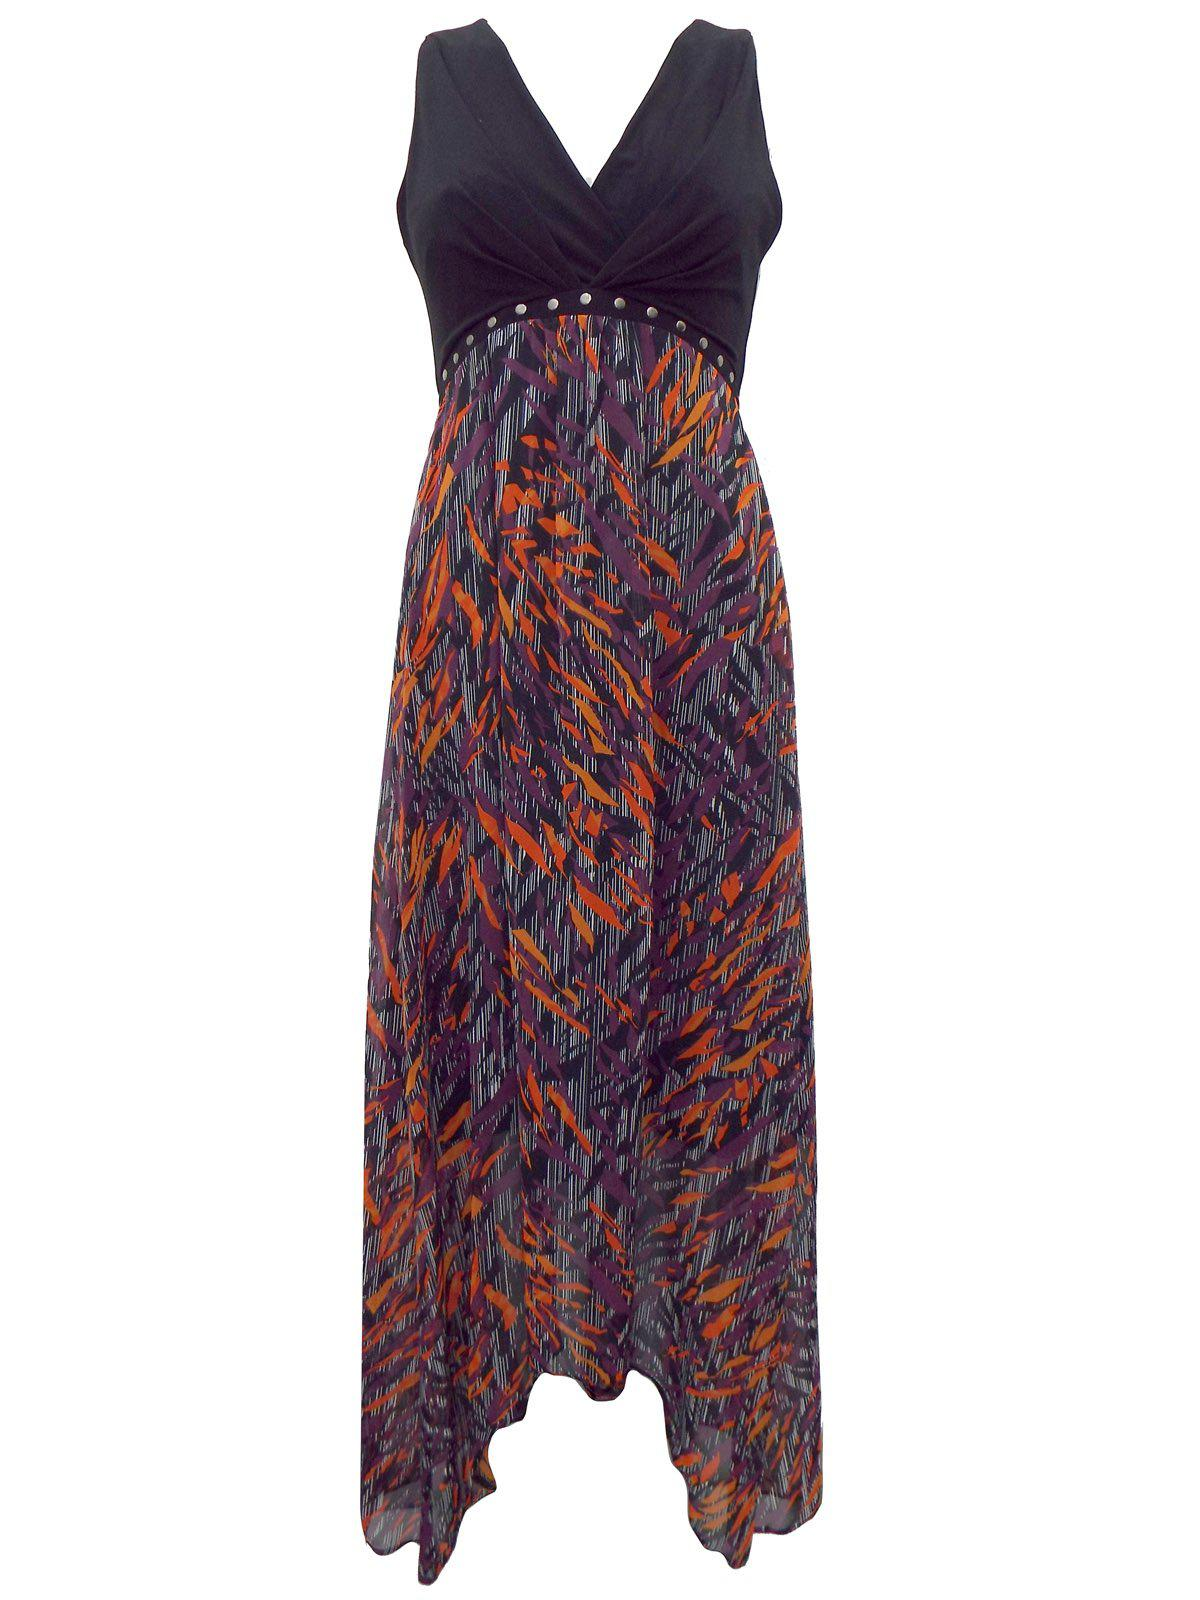 Julien Macdonald Fiery Print Chiffon Maxi Dress-SOLD-SOLD-Daring Diva Australia